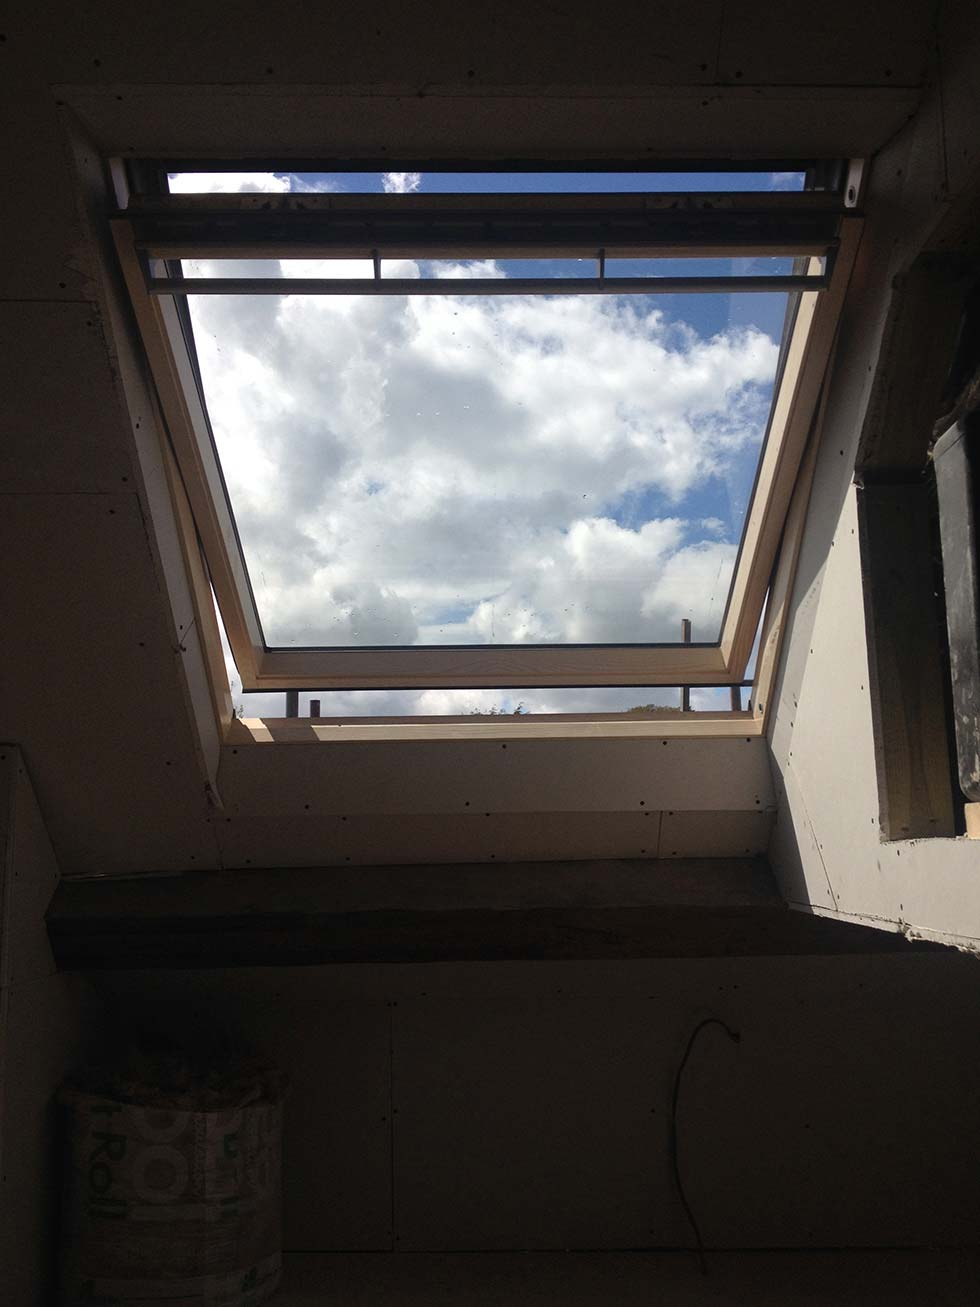 Large velum rooflight in loft conversion